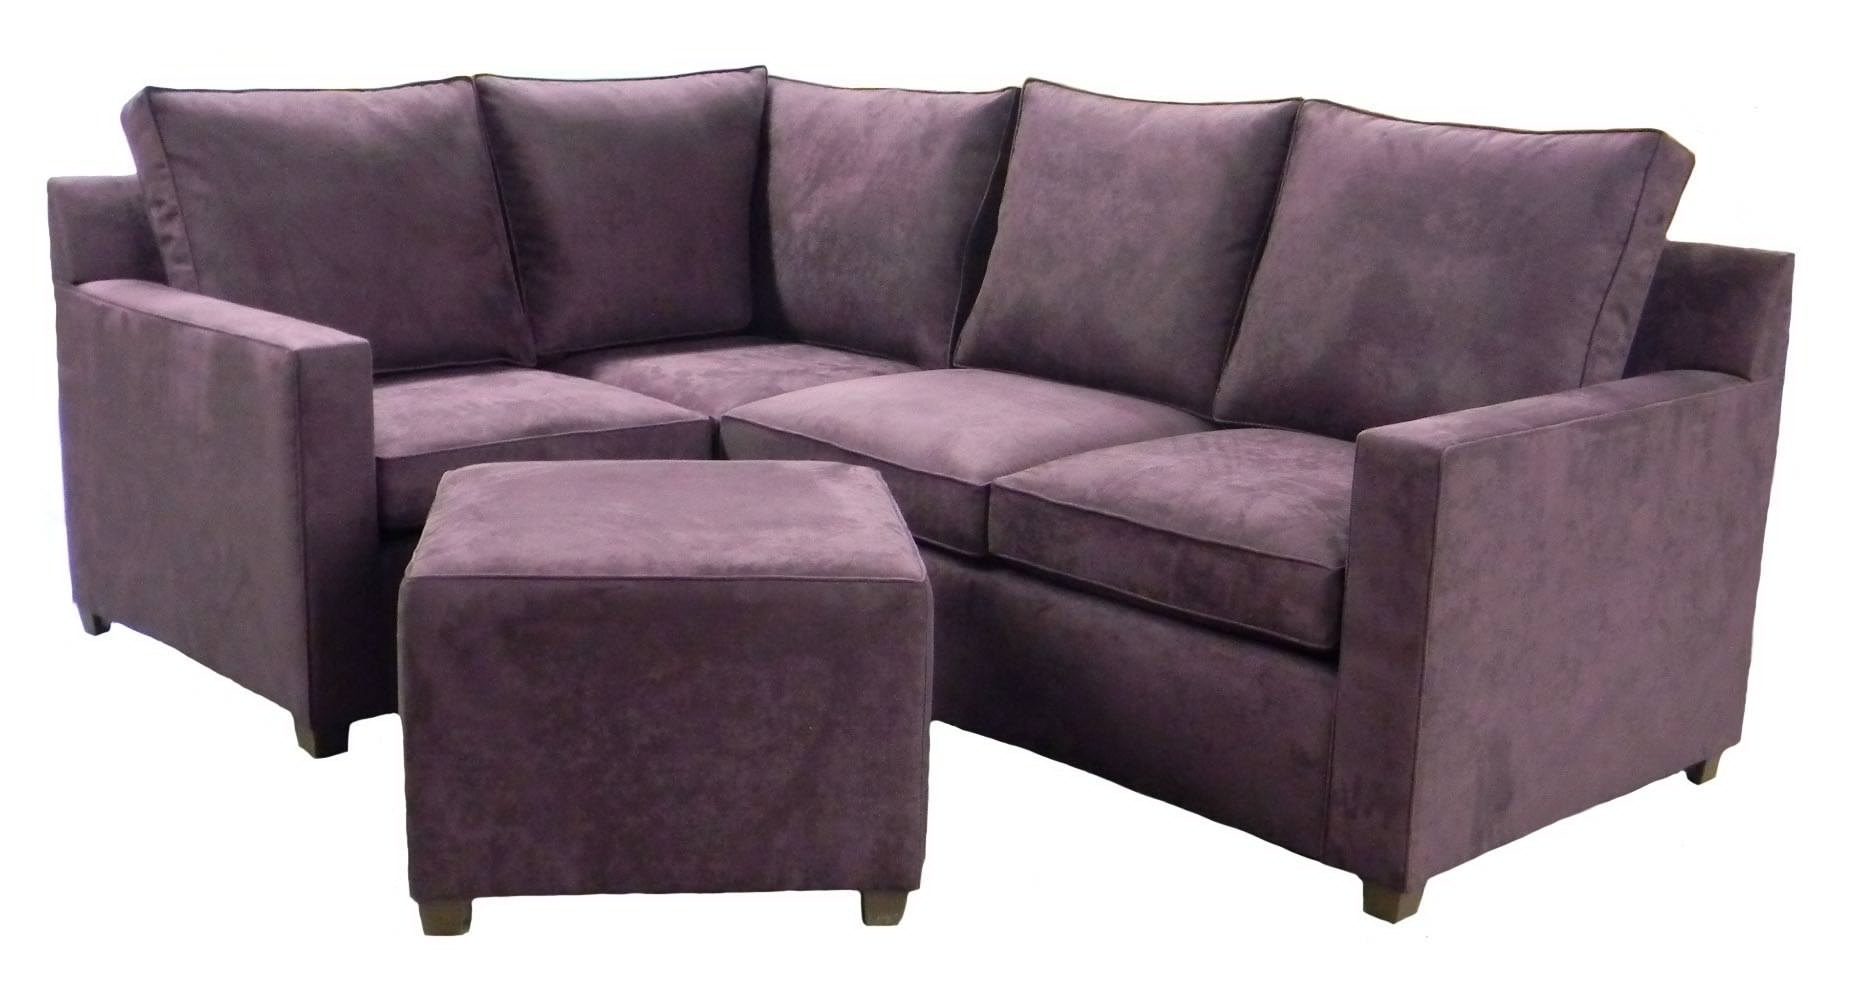 Sectional Sofa Design: Apartment Size Sectional Sofa With Chaise for Apartment Sectional Sofas With Chaise (Image 8 of 10)